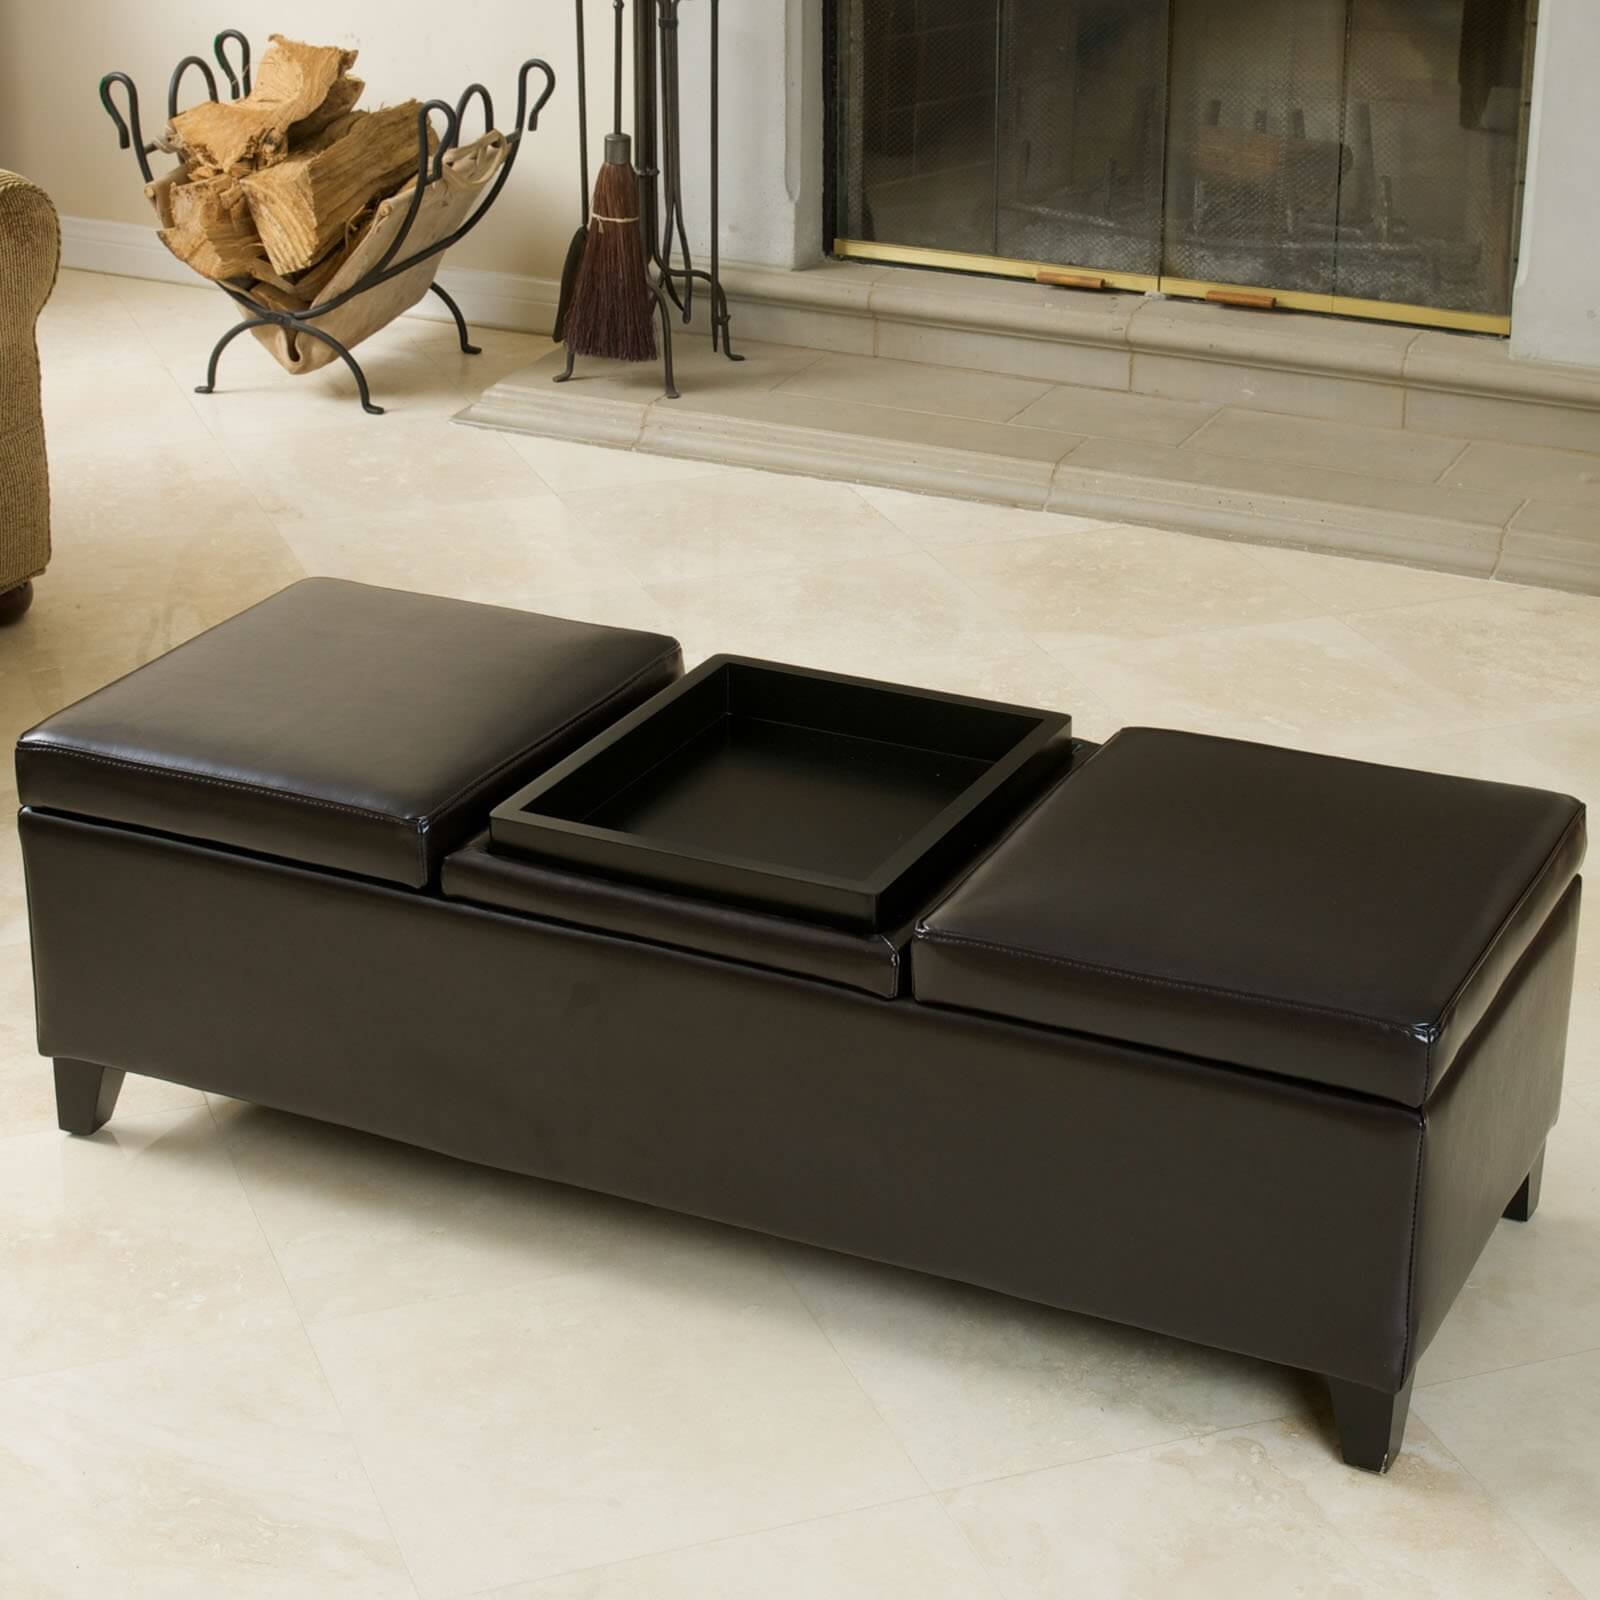 Coffee Table Footrest Storage: 36 Top Brown Leather Ottoman Coffee Tables